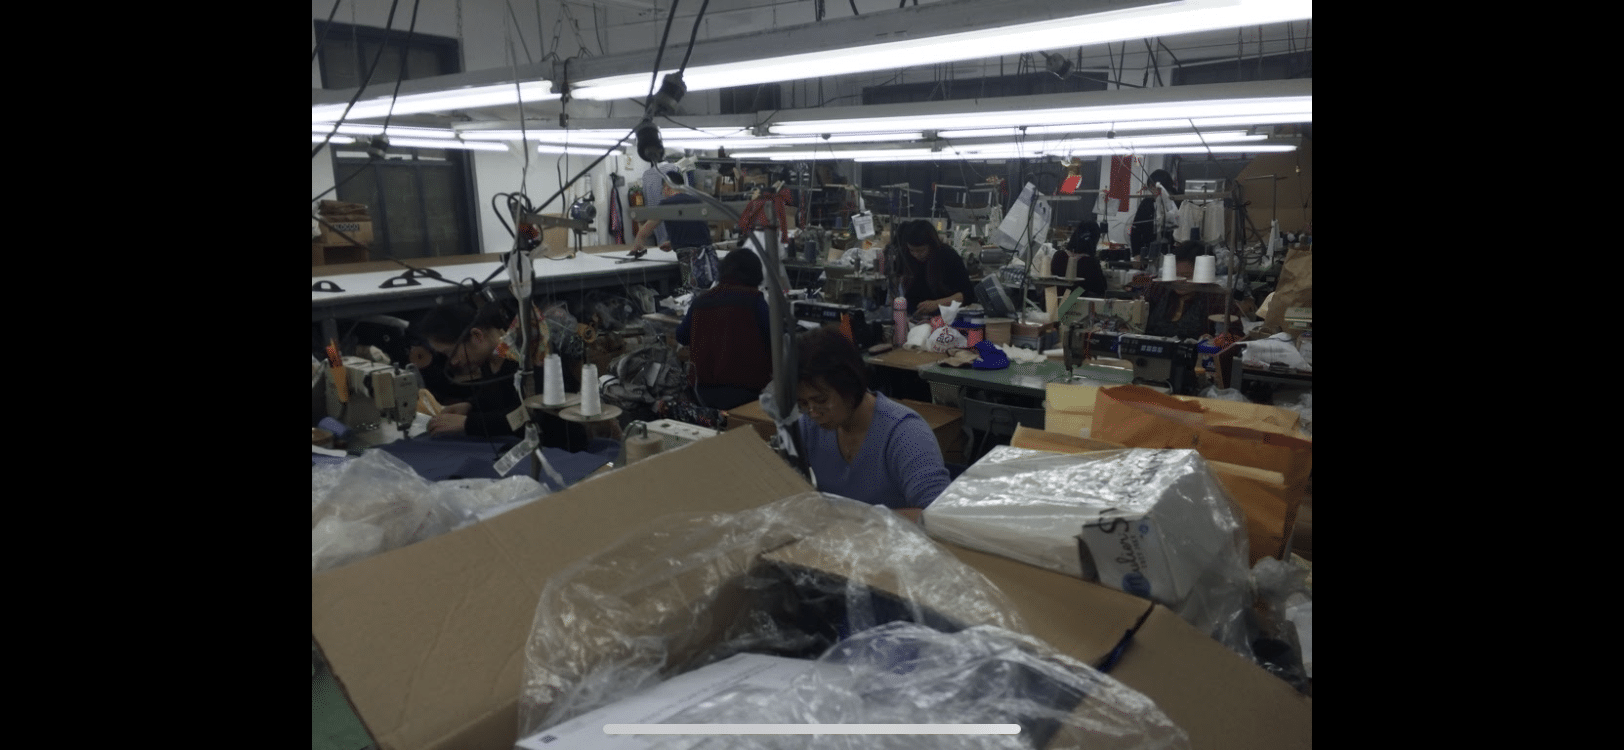 Picture of the inside of definitely not a NYC sweatshop